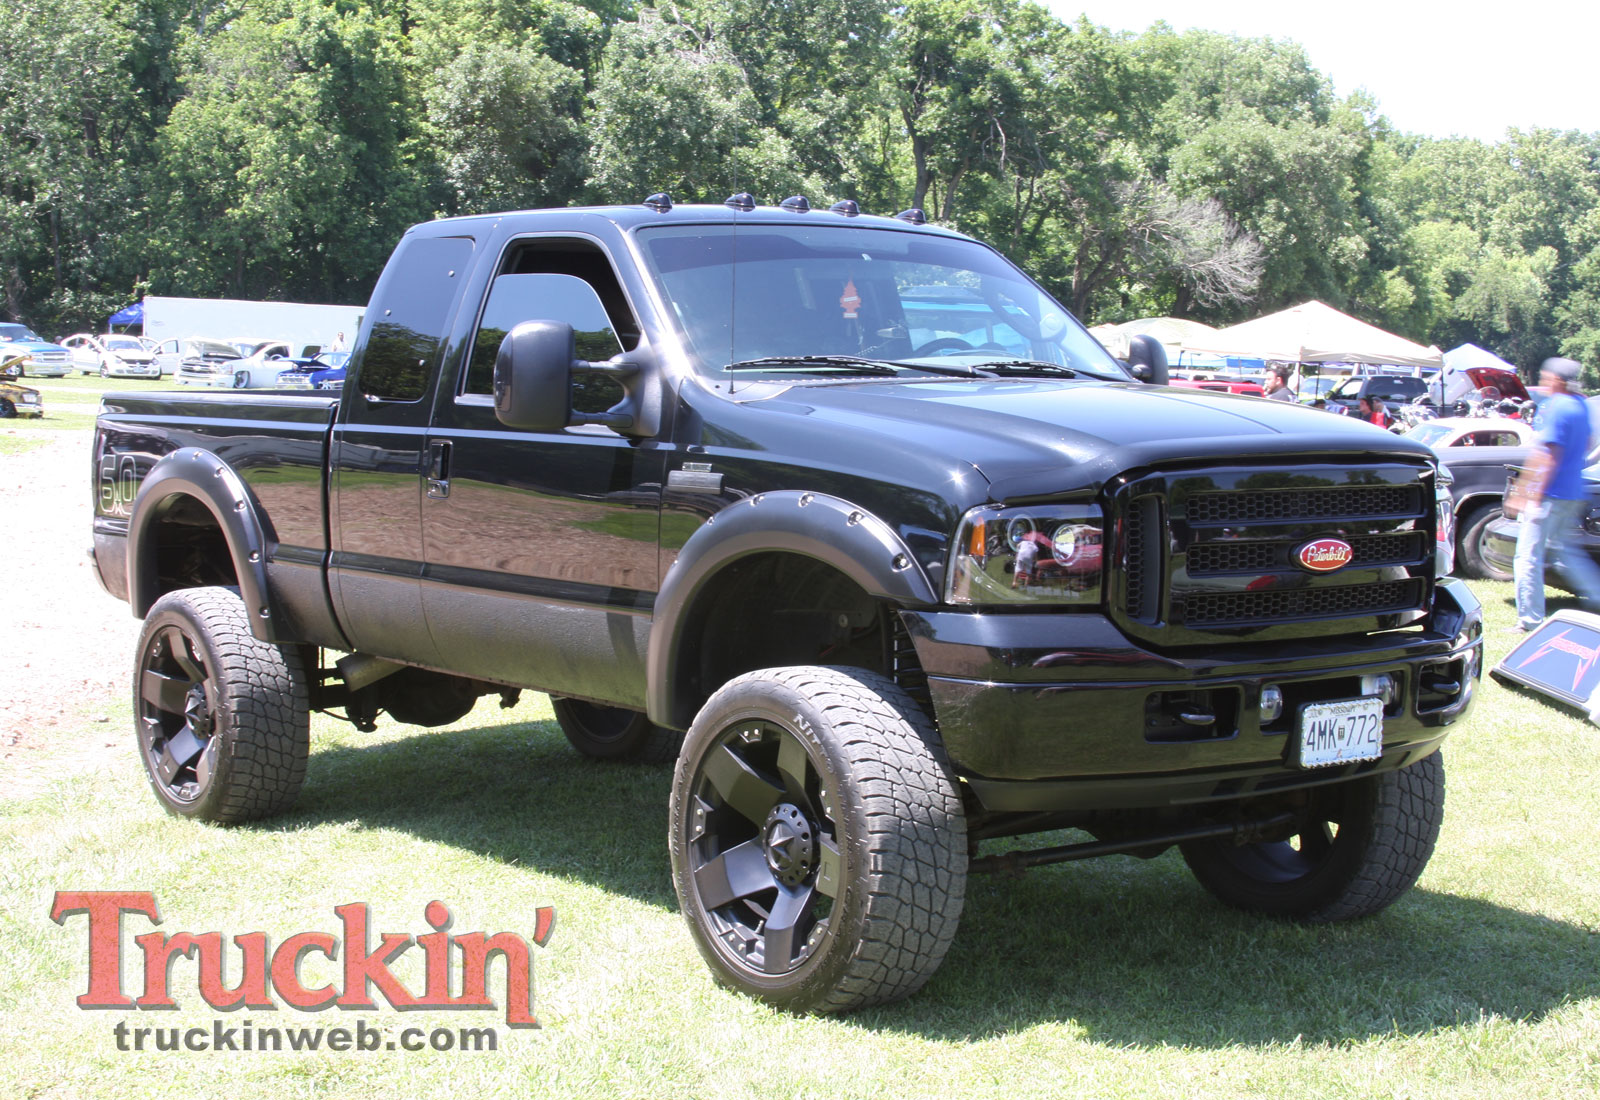 2010 ford f 250 super duty image 14